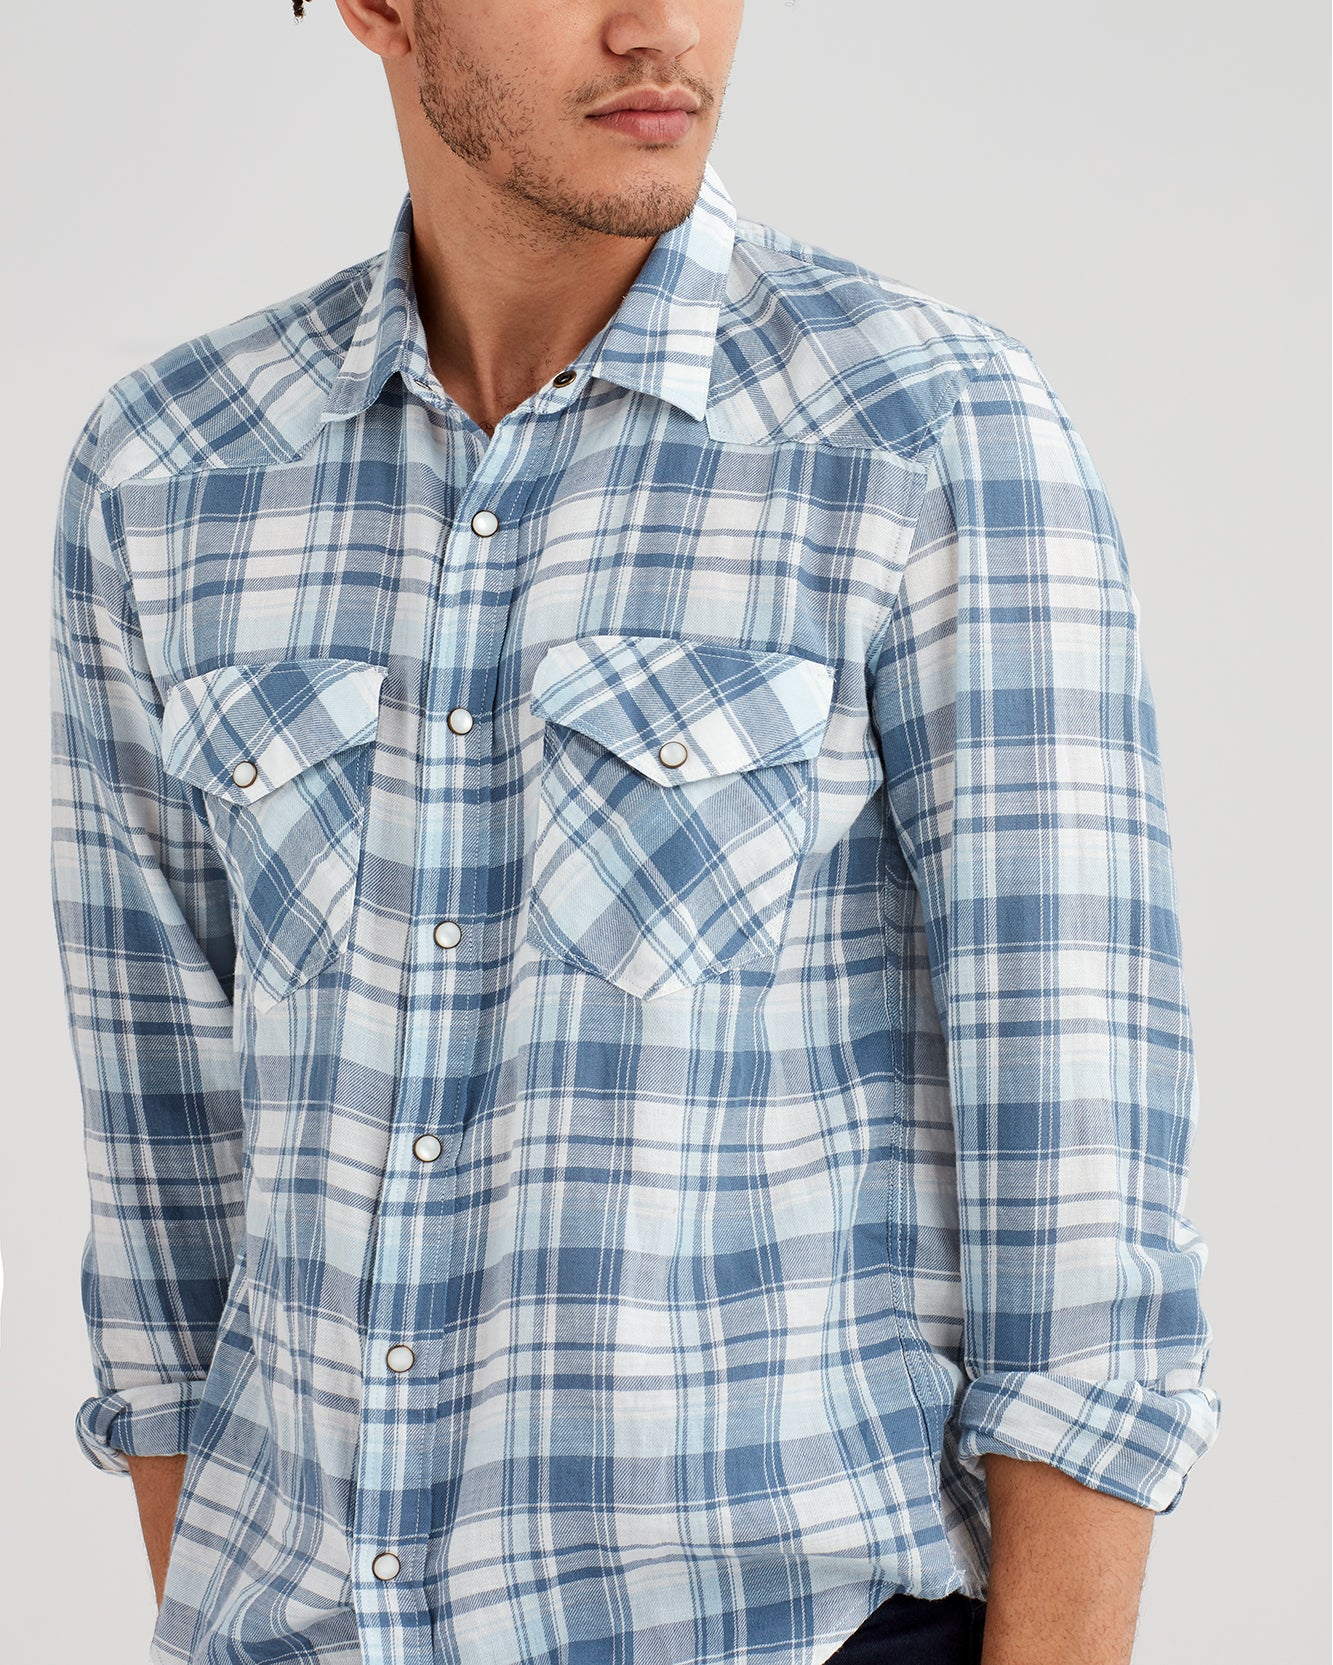 Image of Long Sleeve Western Plaid Shirt in Pale Blue